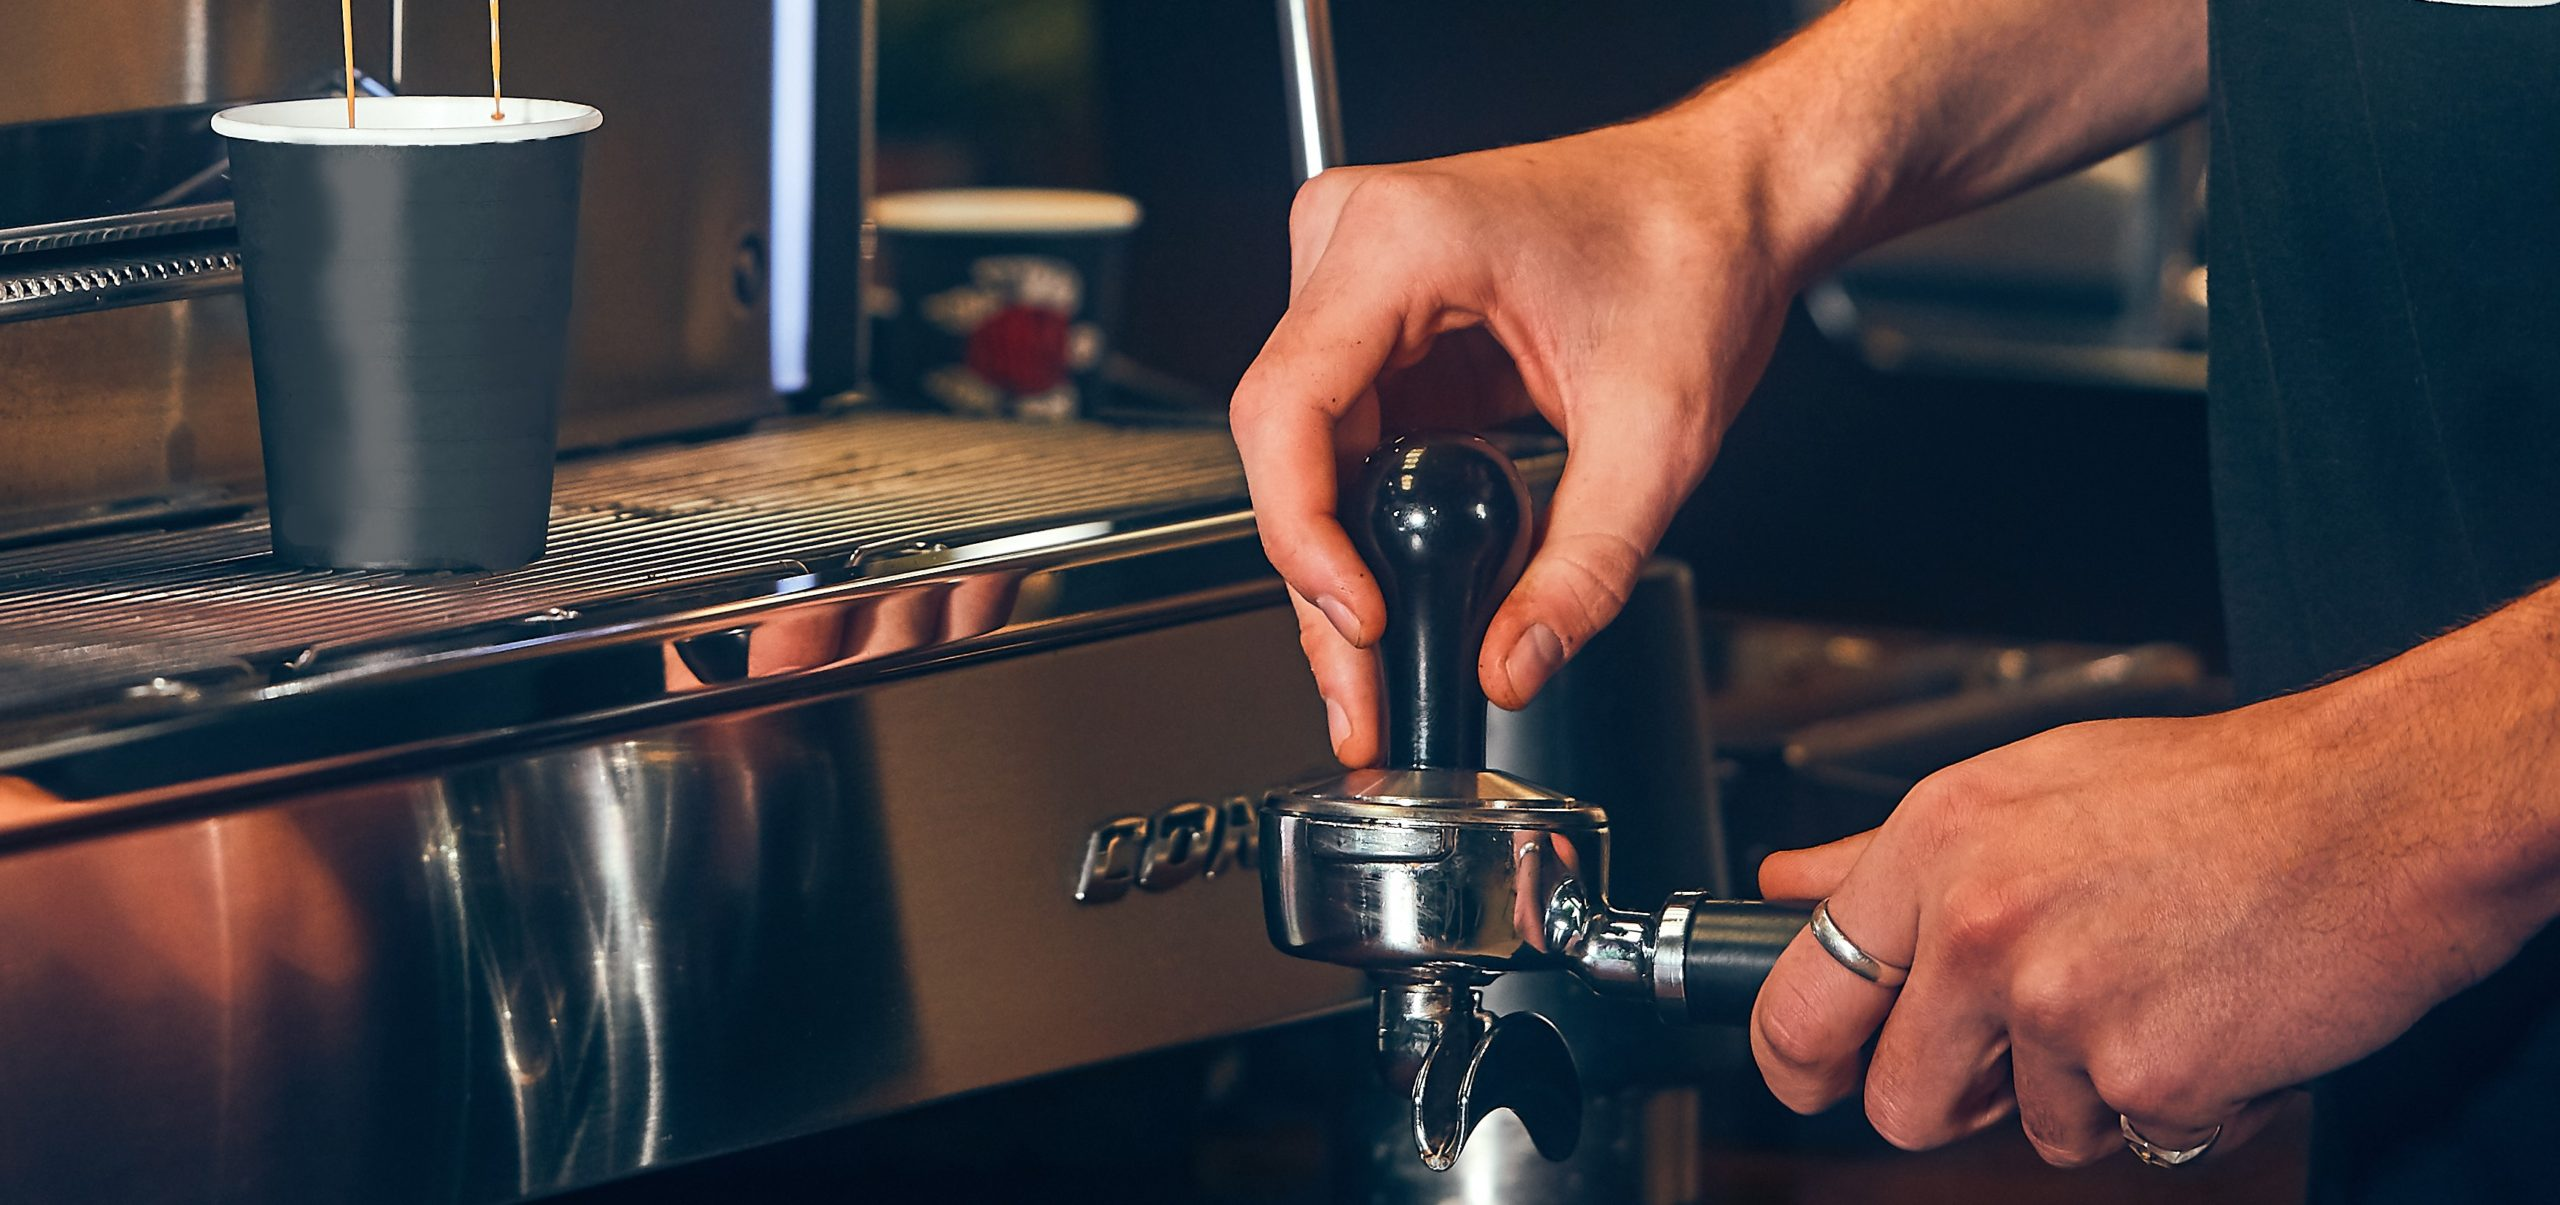 Barista Training - how to tamp properly